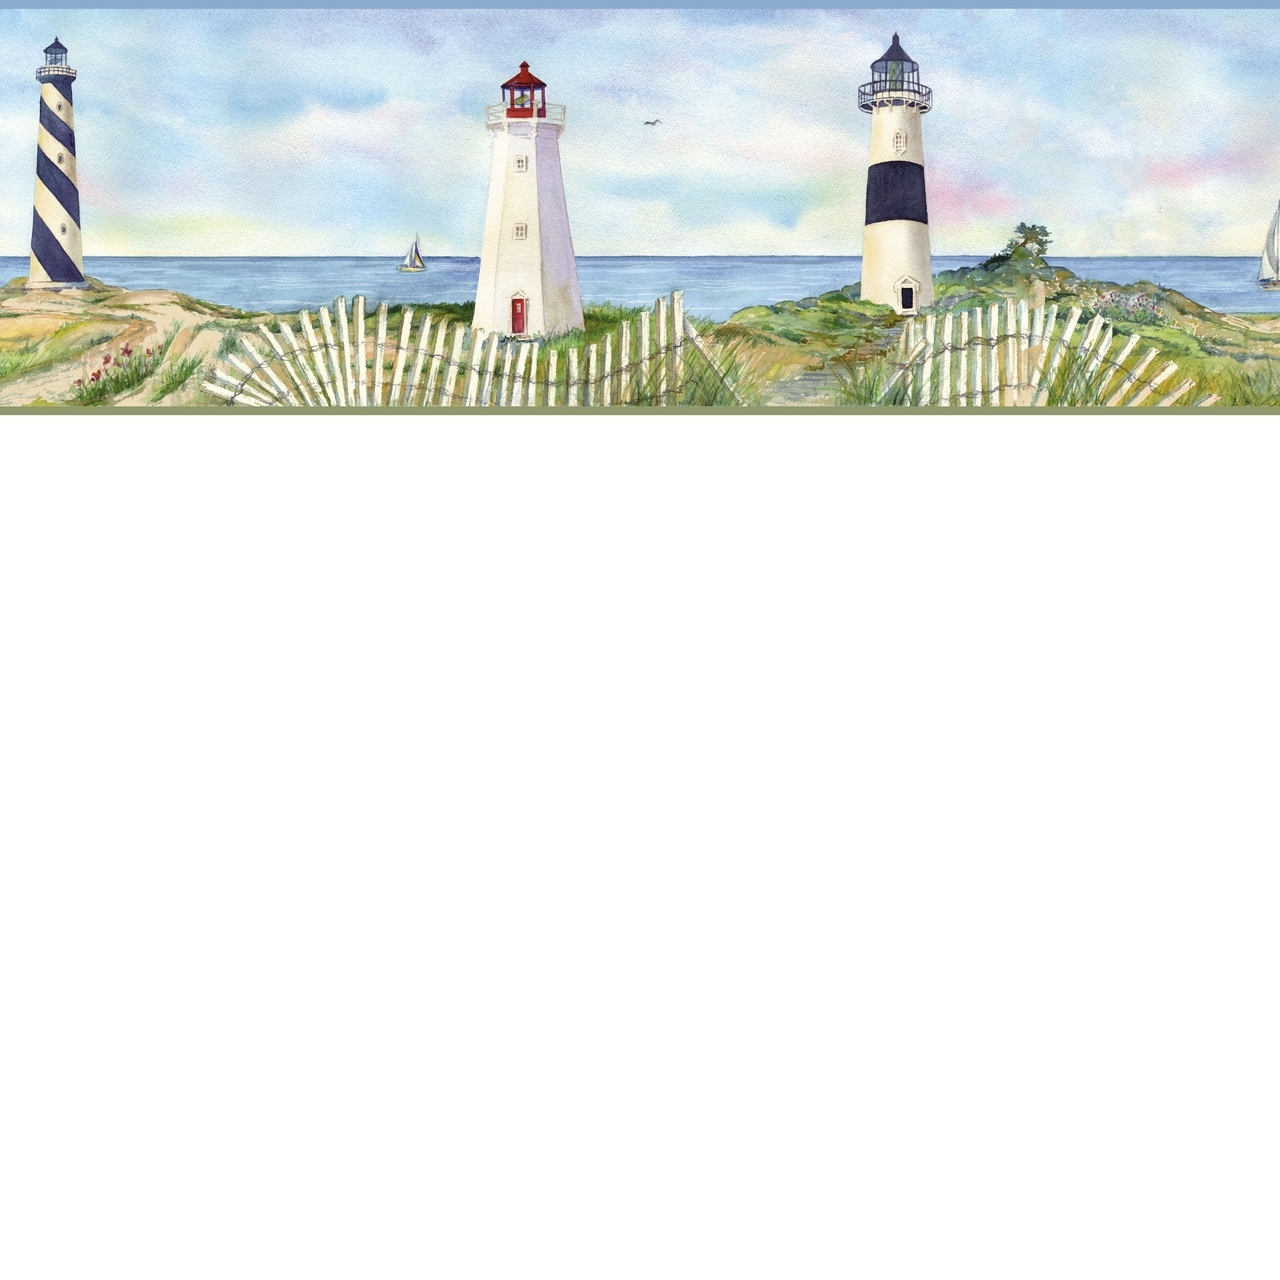 http-www-papermywalls-com-borders-by-chesapeake-coastal-lighthouse-border-b-wallpaper-wp4403647